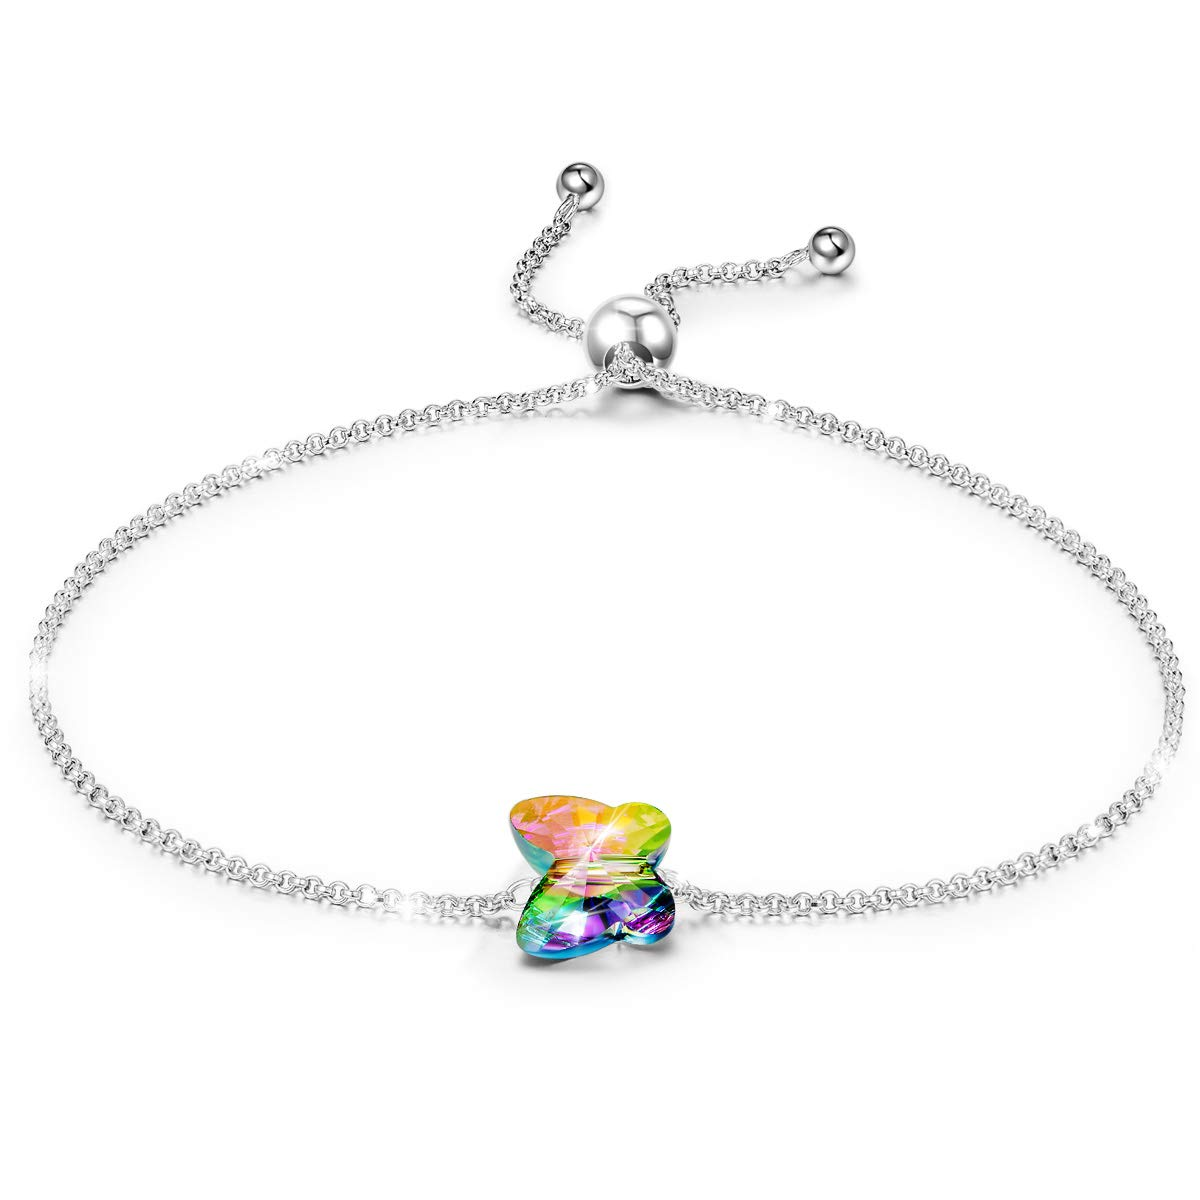 LADY COLOUR for Her 925 Sterling Silver Butterfly Bracelet Swarovski Crystal Fine Jewelry for Women Birthday Gifts for Women Teen Girls Sister for Wife Daughter Mom